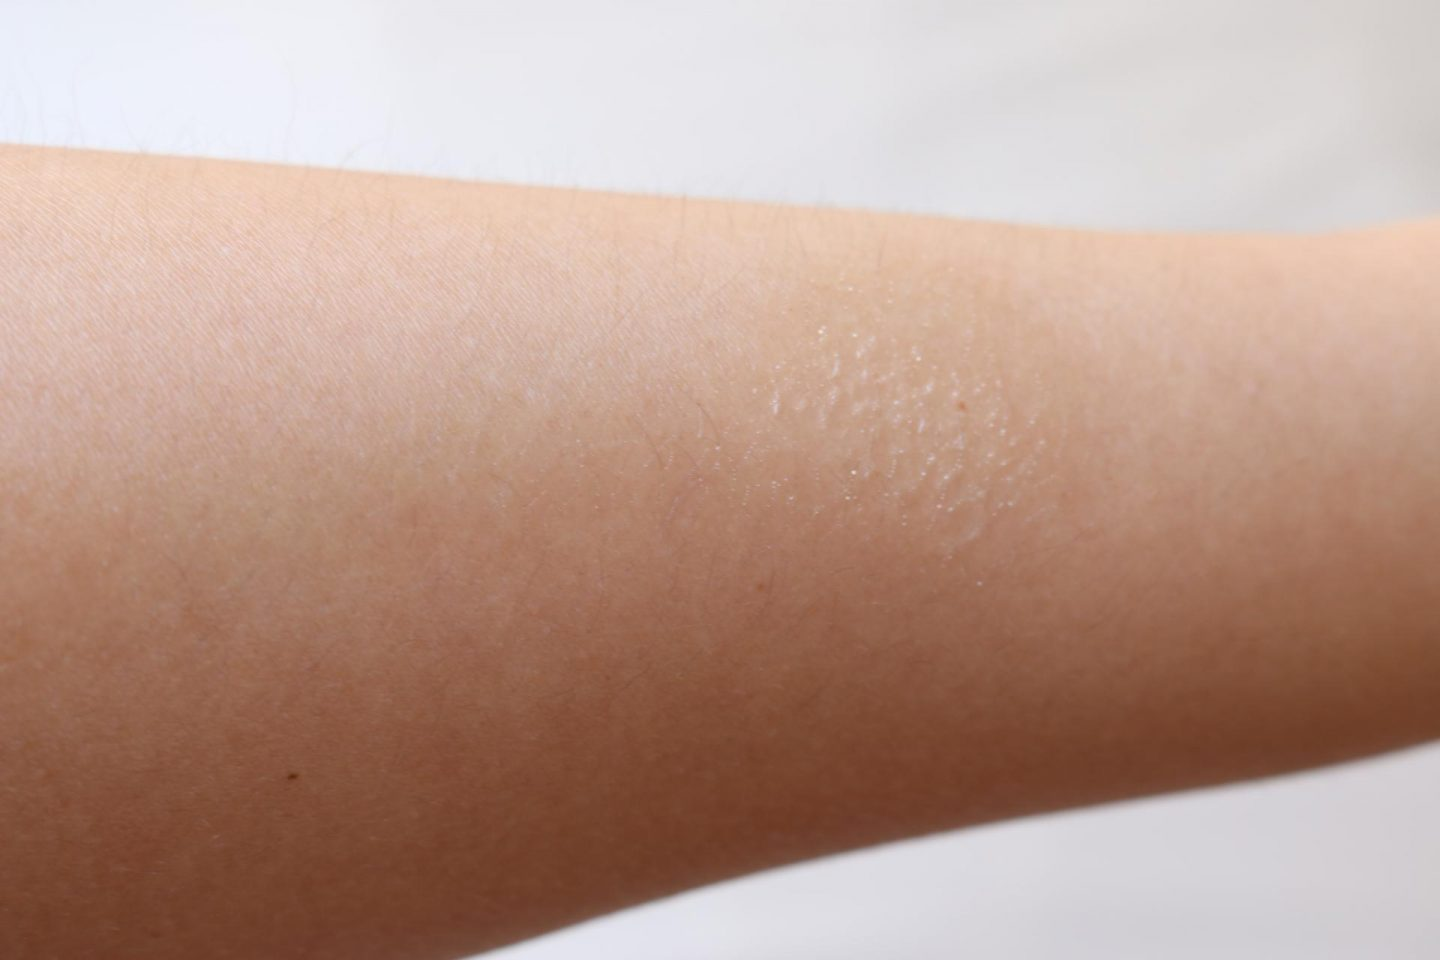 Sports Invisible Protective Mist SPF50+ swatched on my arm